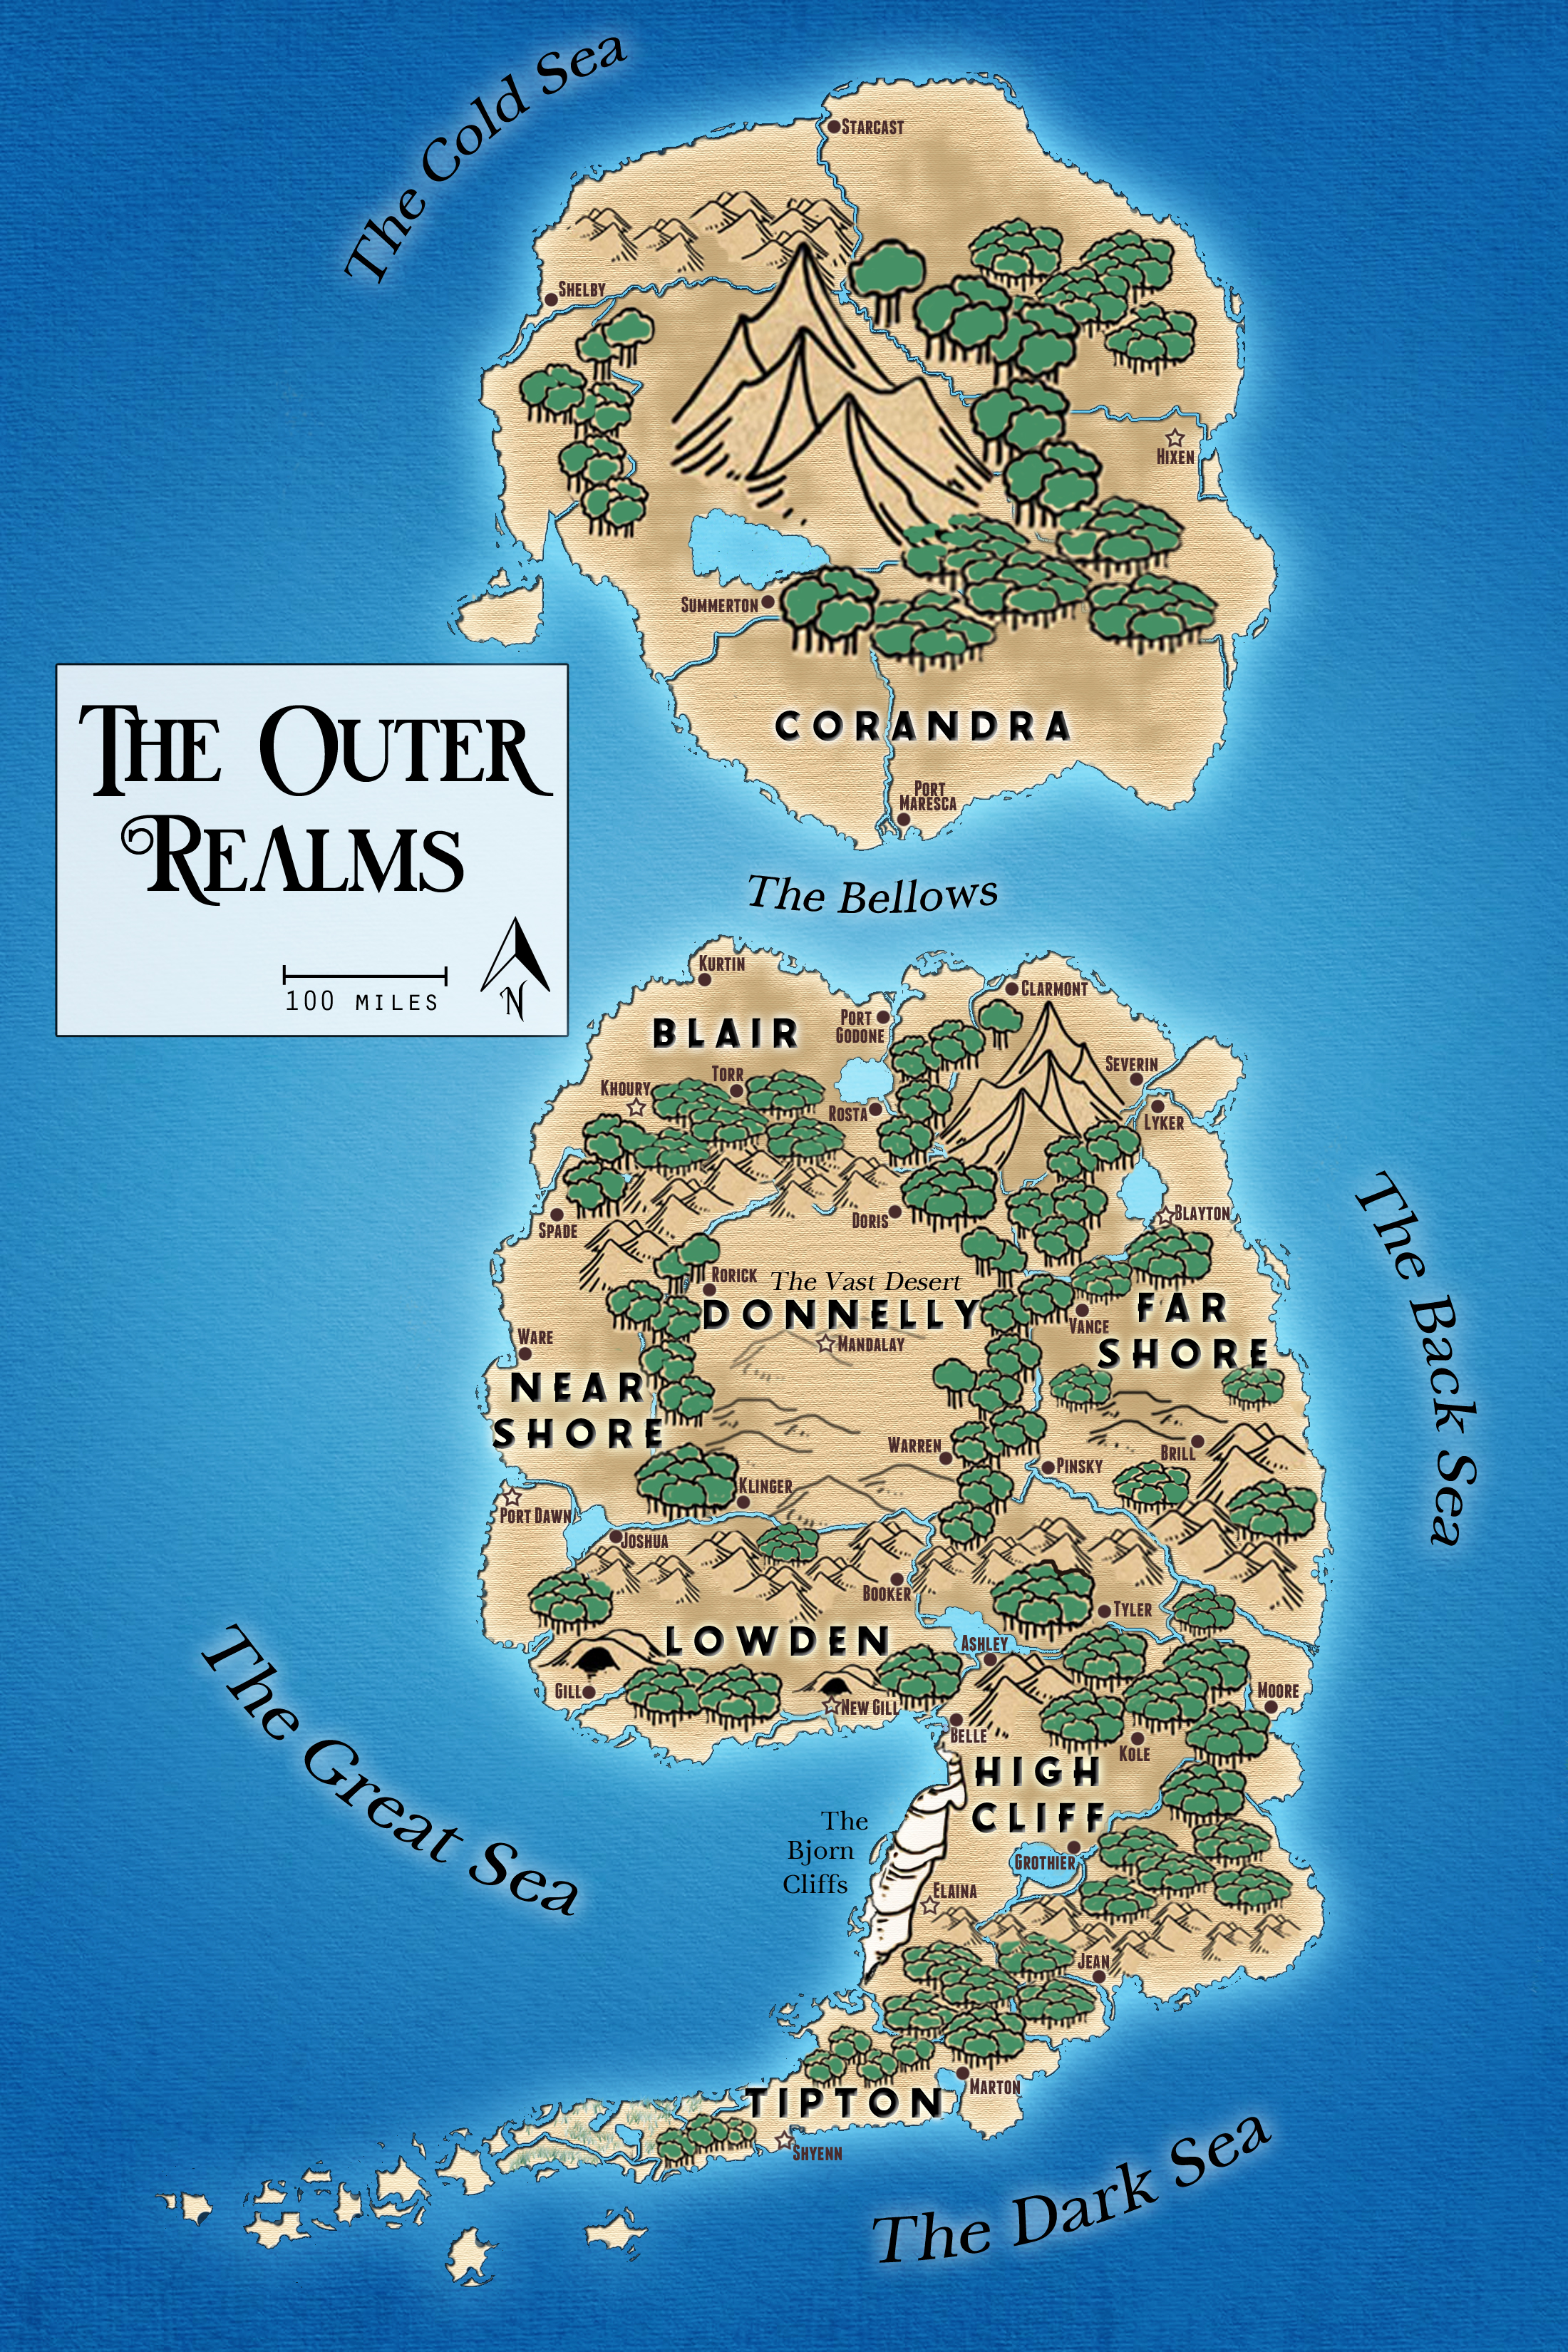 Map of the Outer Realms